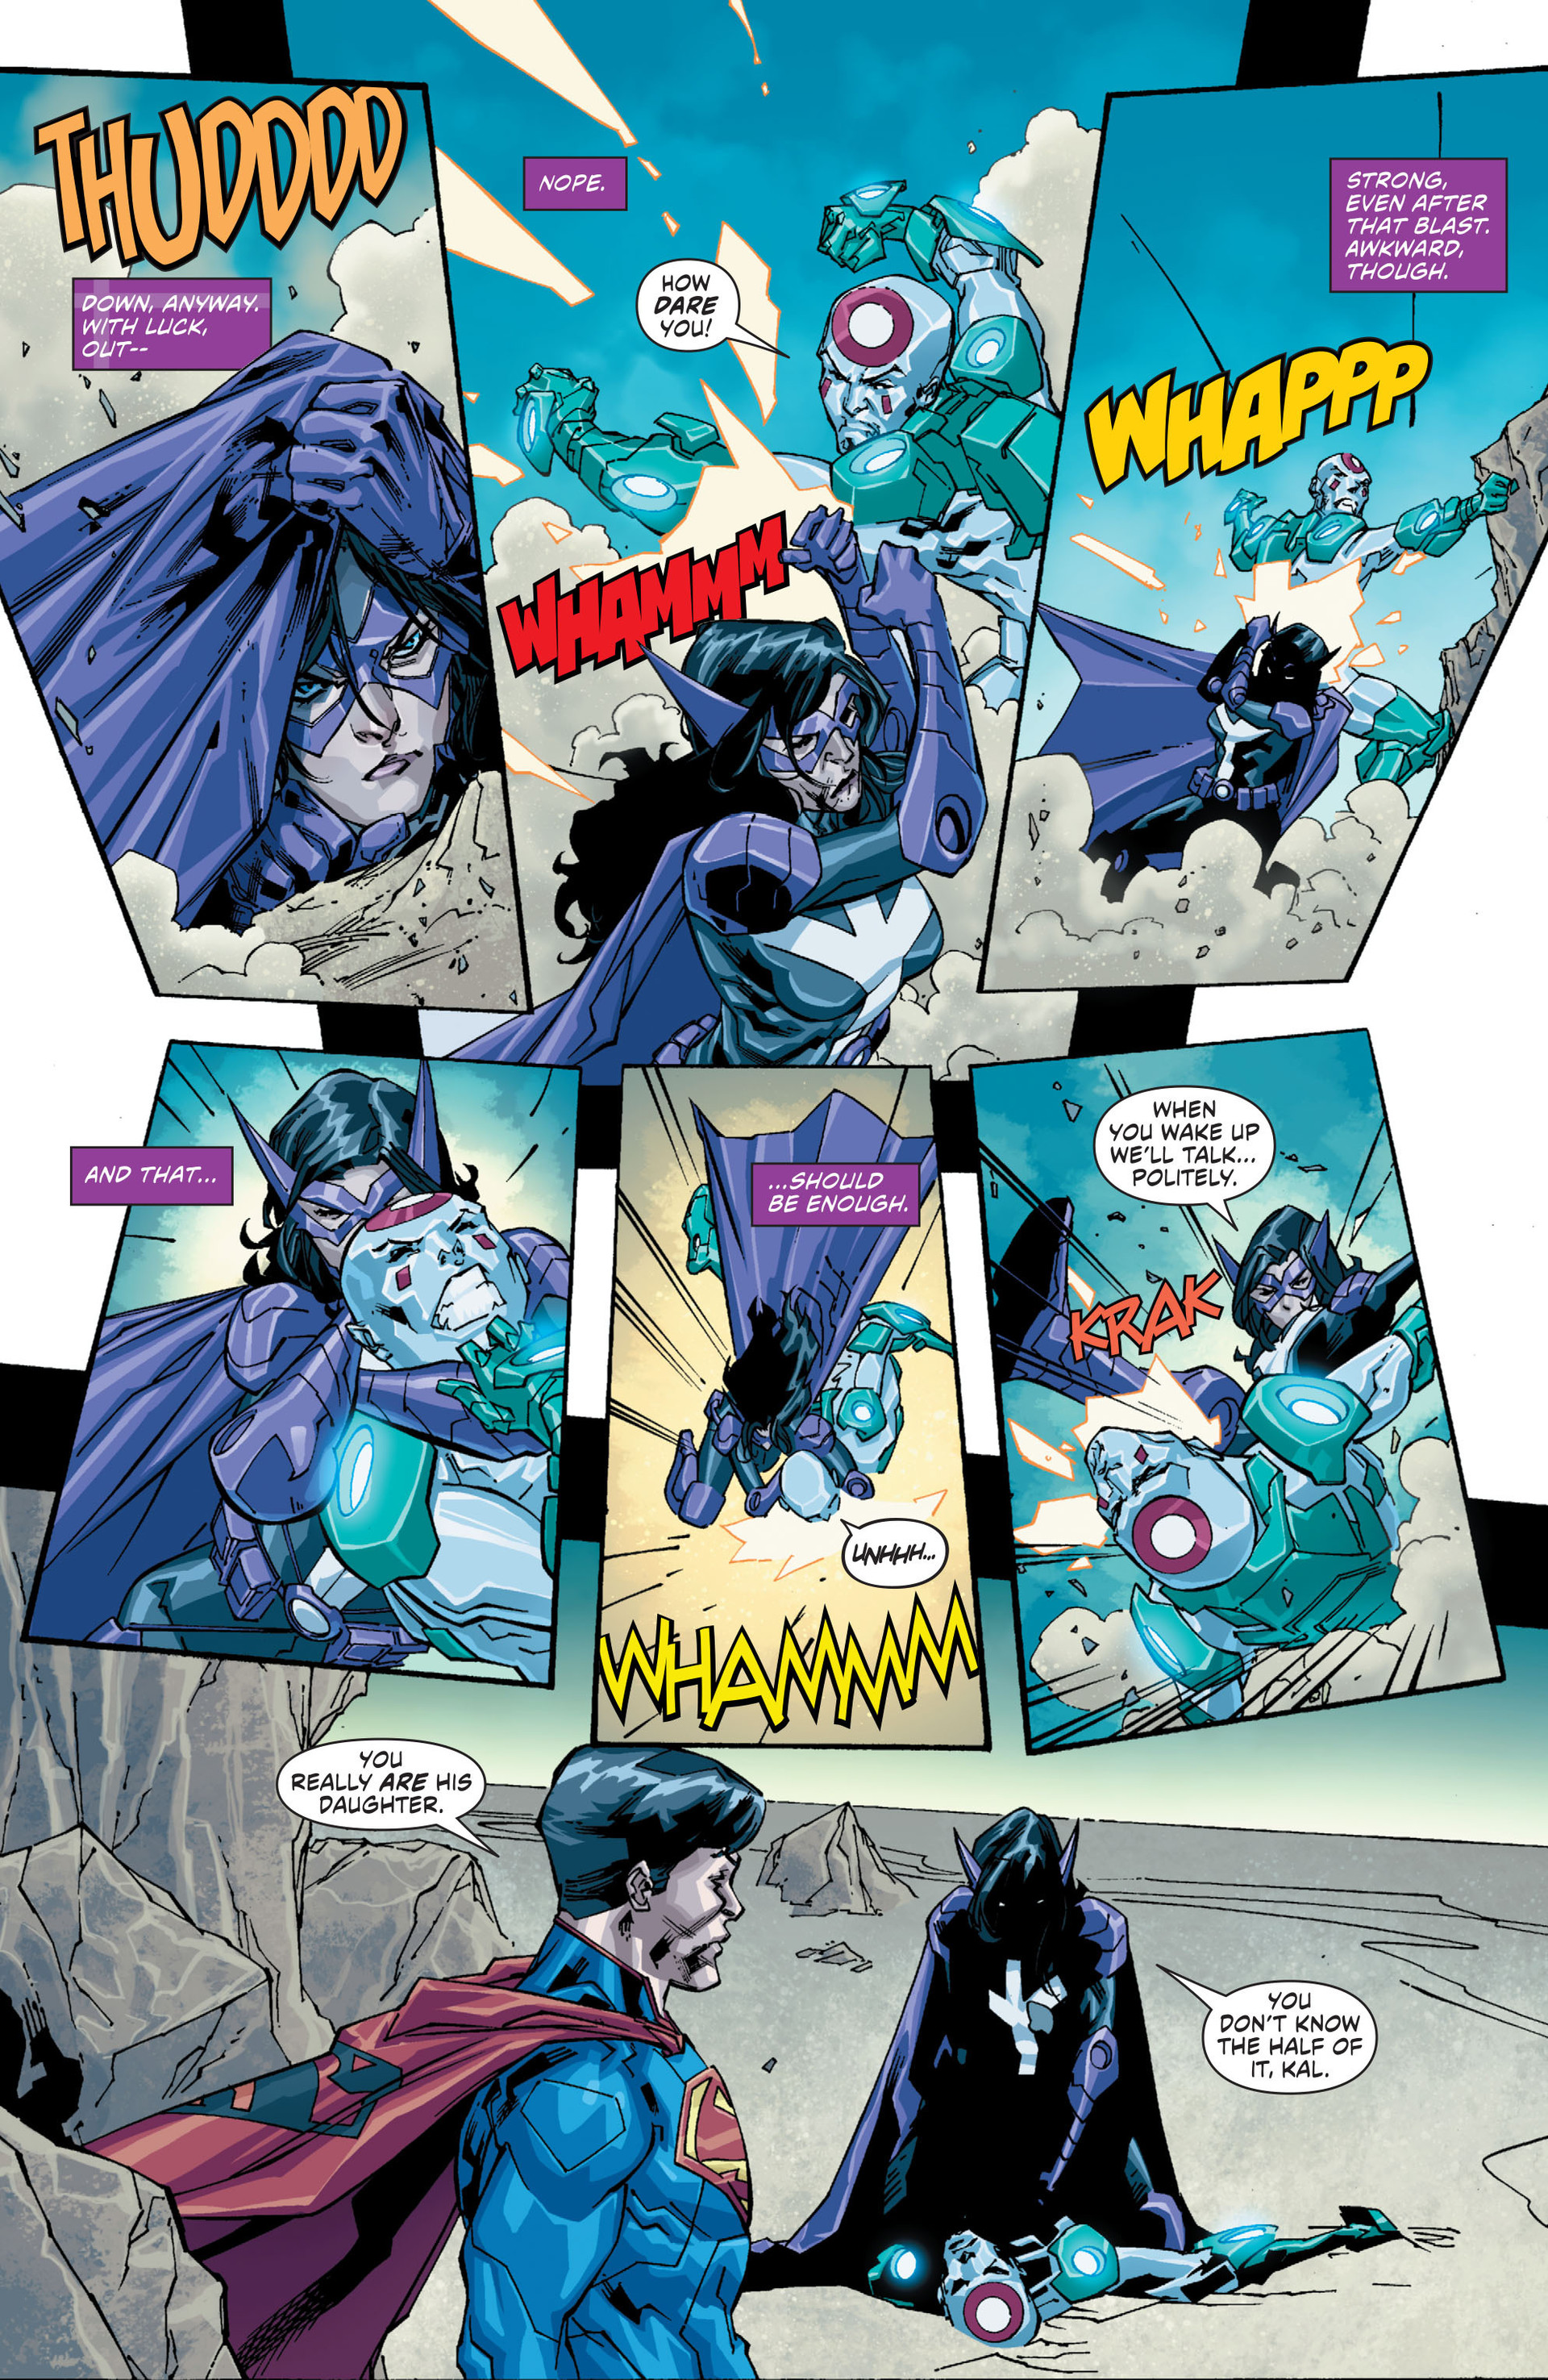 Read online Worlds' Finest comic -  Issue #20 - 10